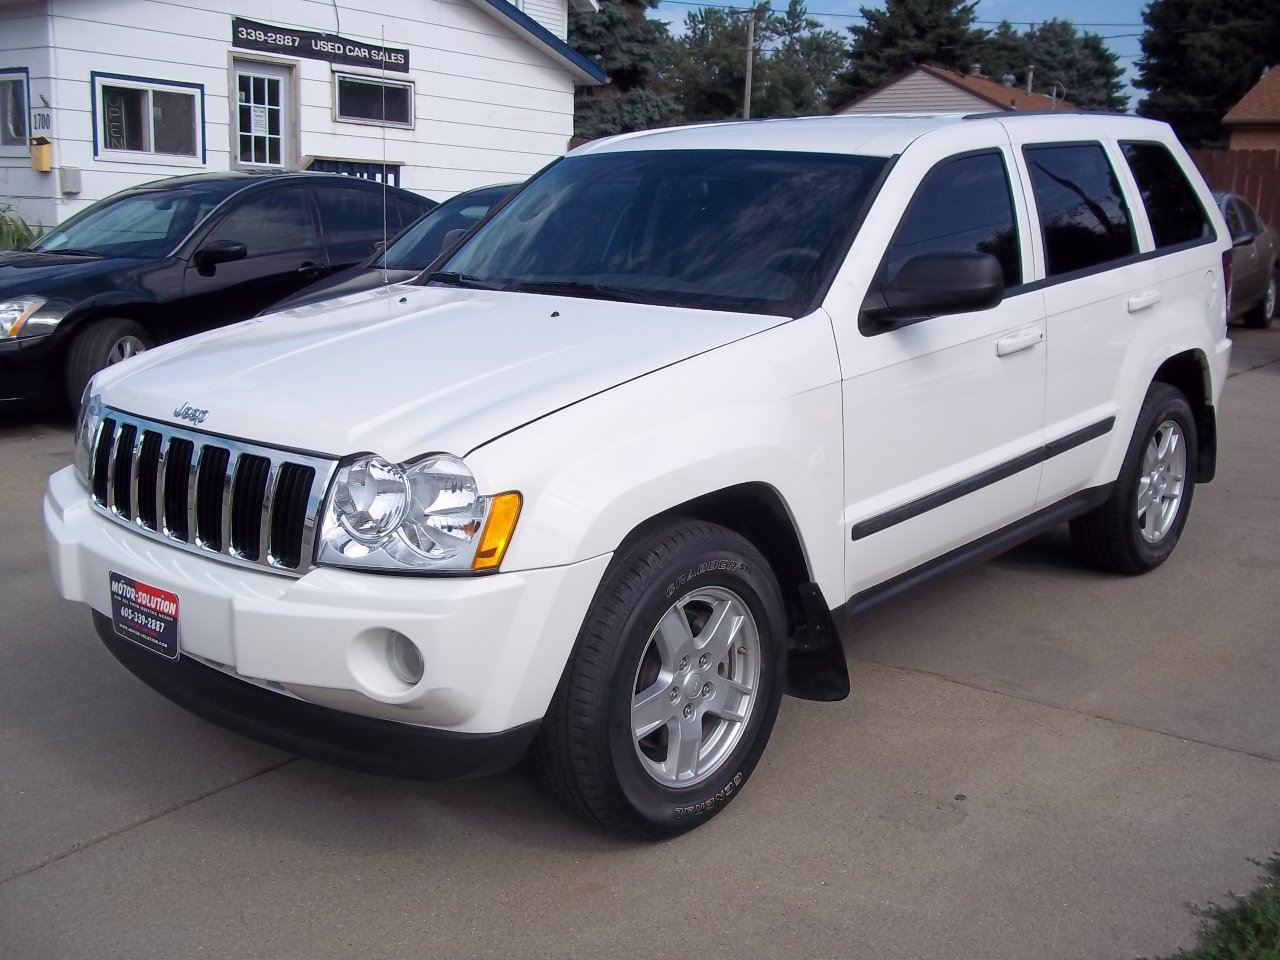 2007 jeep grand cherokee laredo 4dr suv 4wd in sioux falls sd motor solution. Black Bedroom Furniture Sets. Home Design Ideas